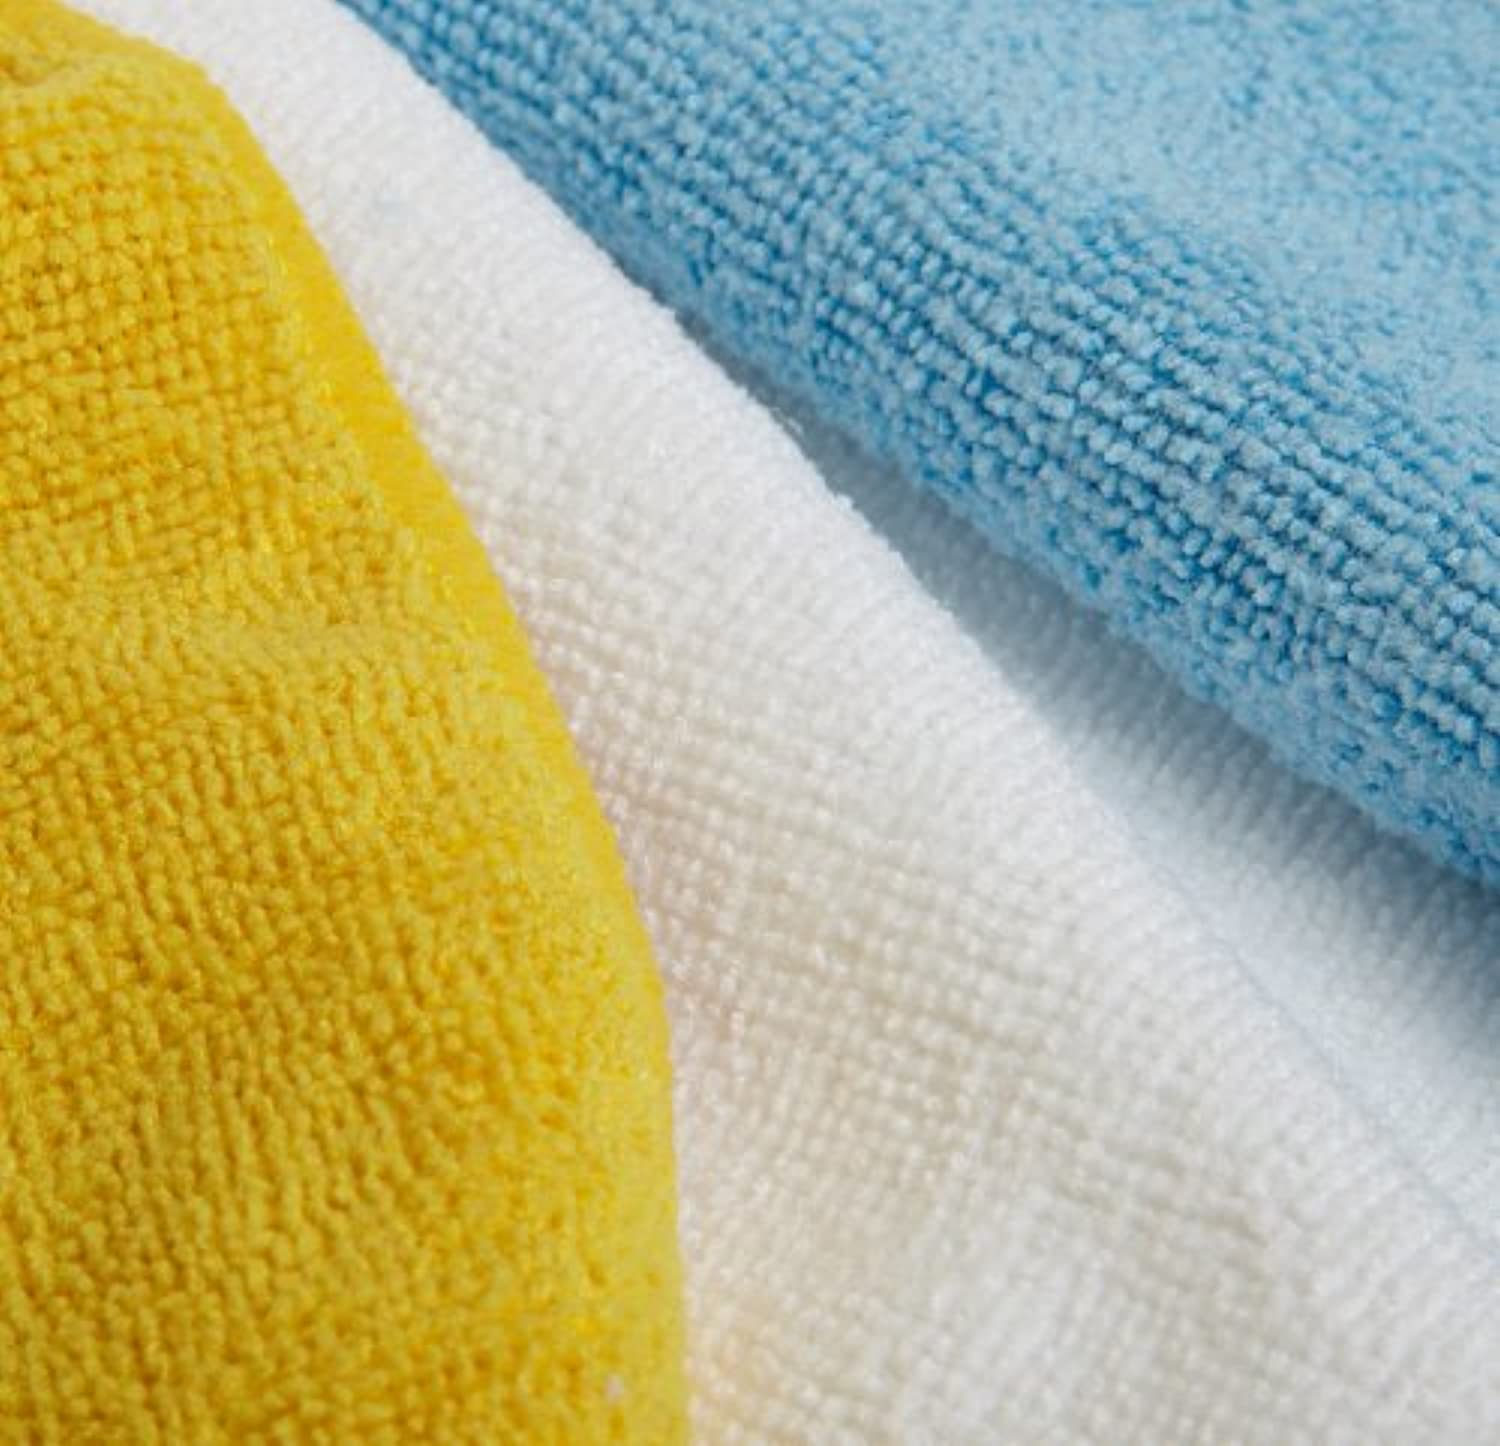 Classier: Buy Basics AmazonBasics Blue, White, and Yellow Microfiber Cleaning Cloth - Pack of 24